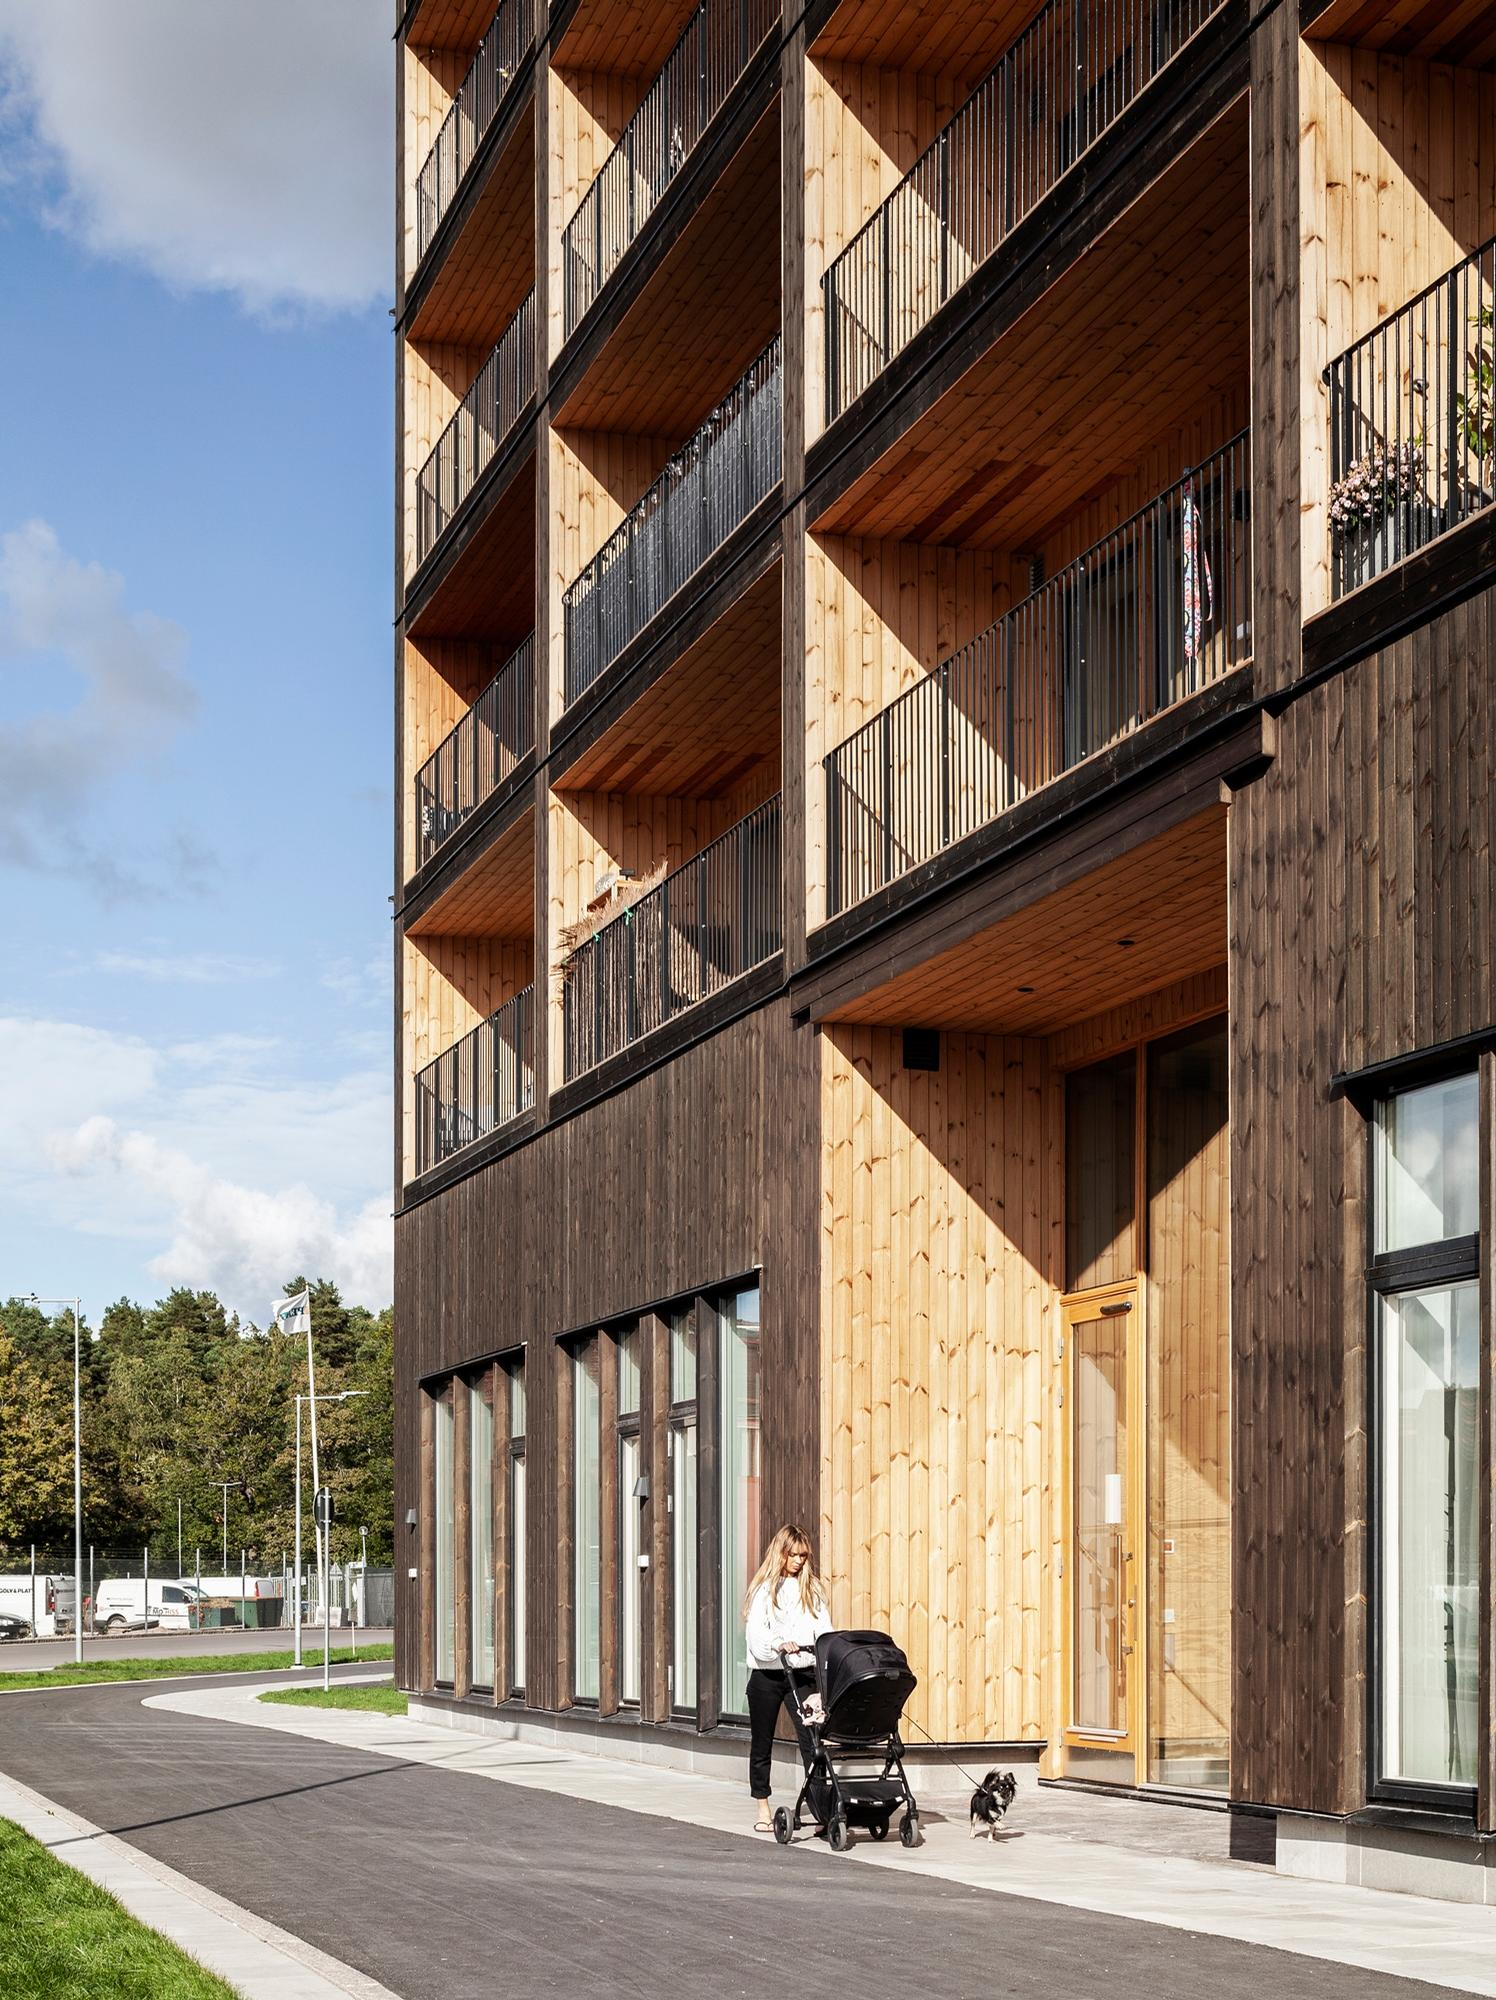 All parts of the building, including its walls, beams, balconies, lifts and stairwells, are made of cross-laminated timber / Nikolaj Jakobsen